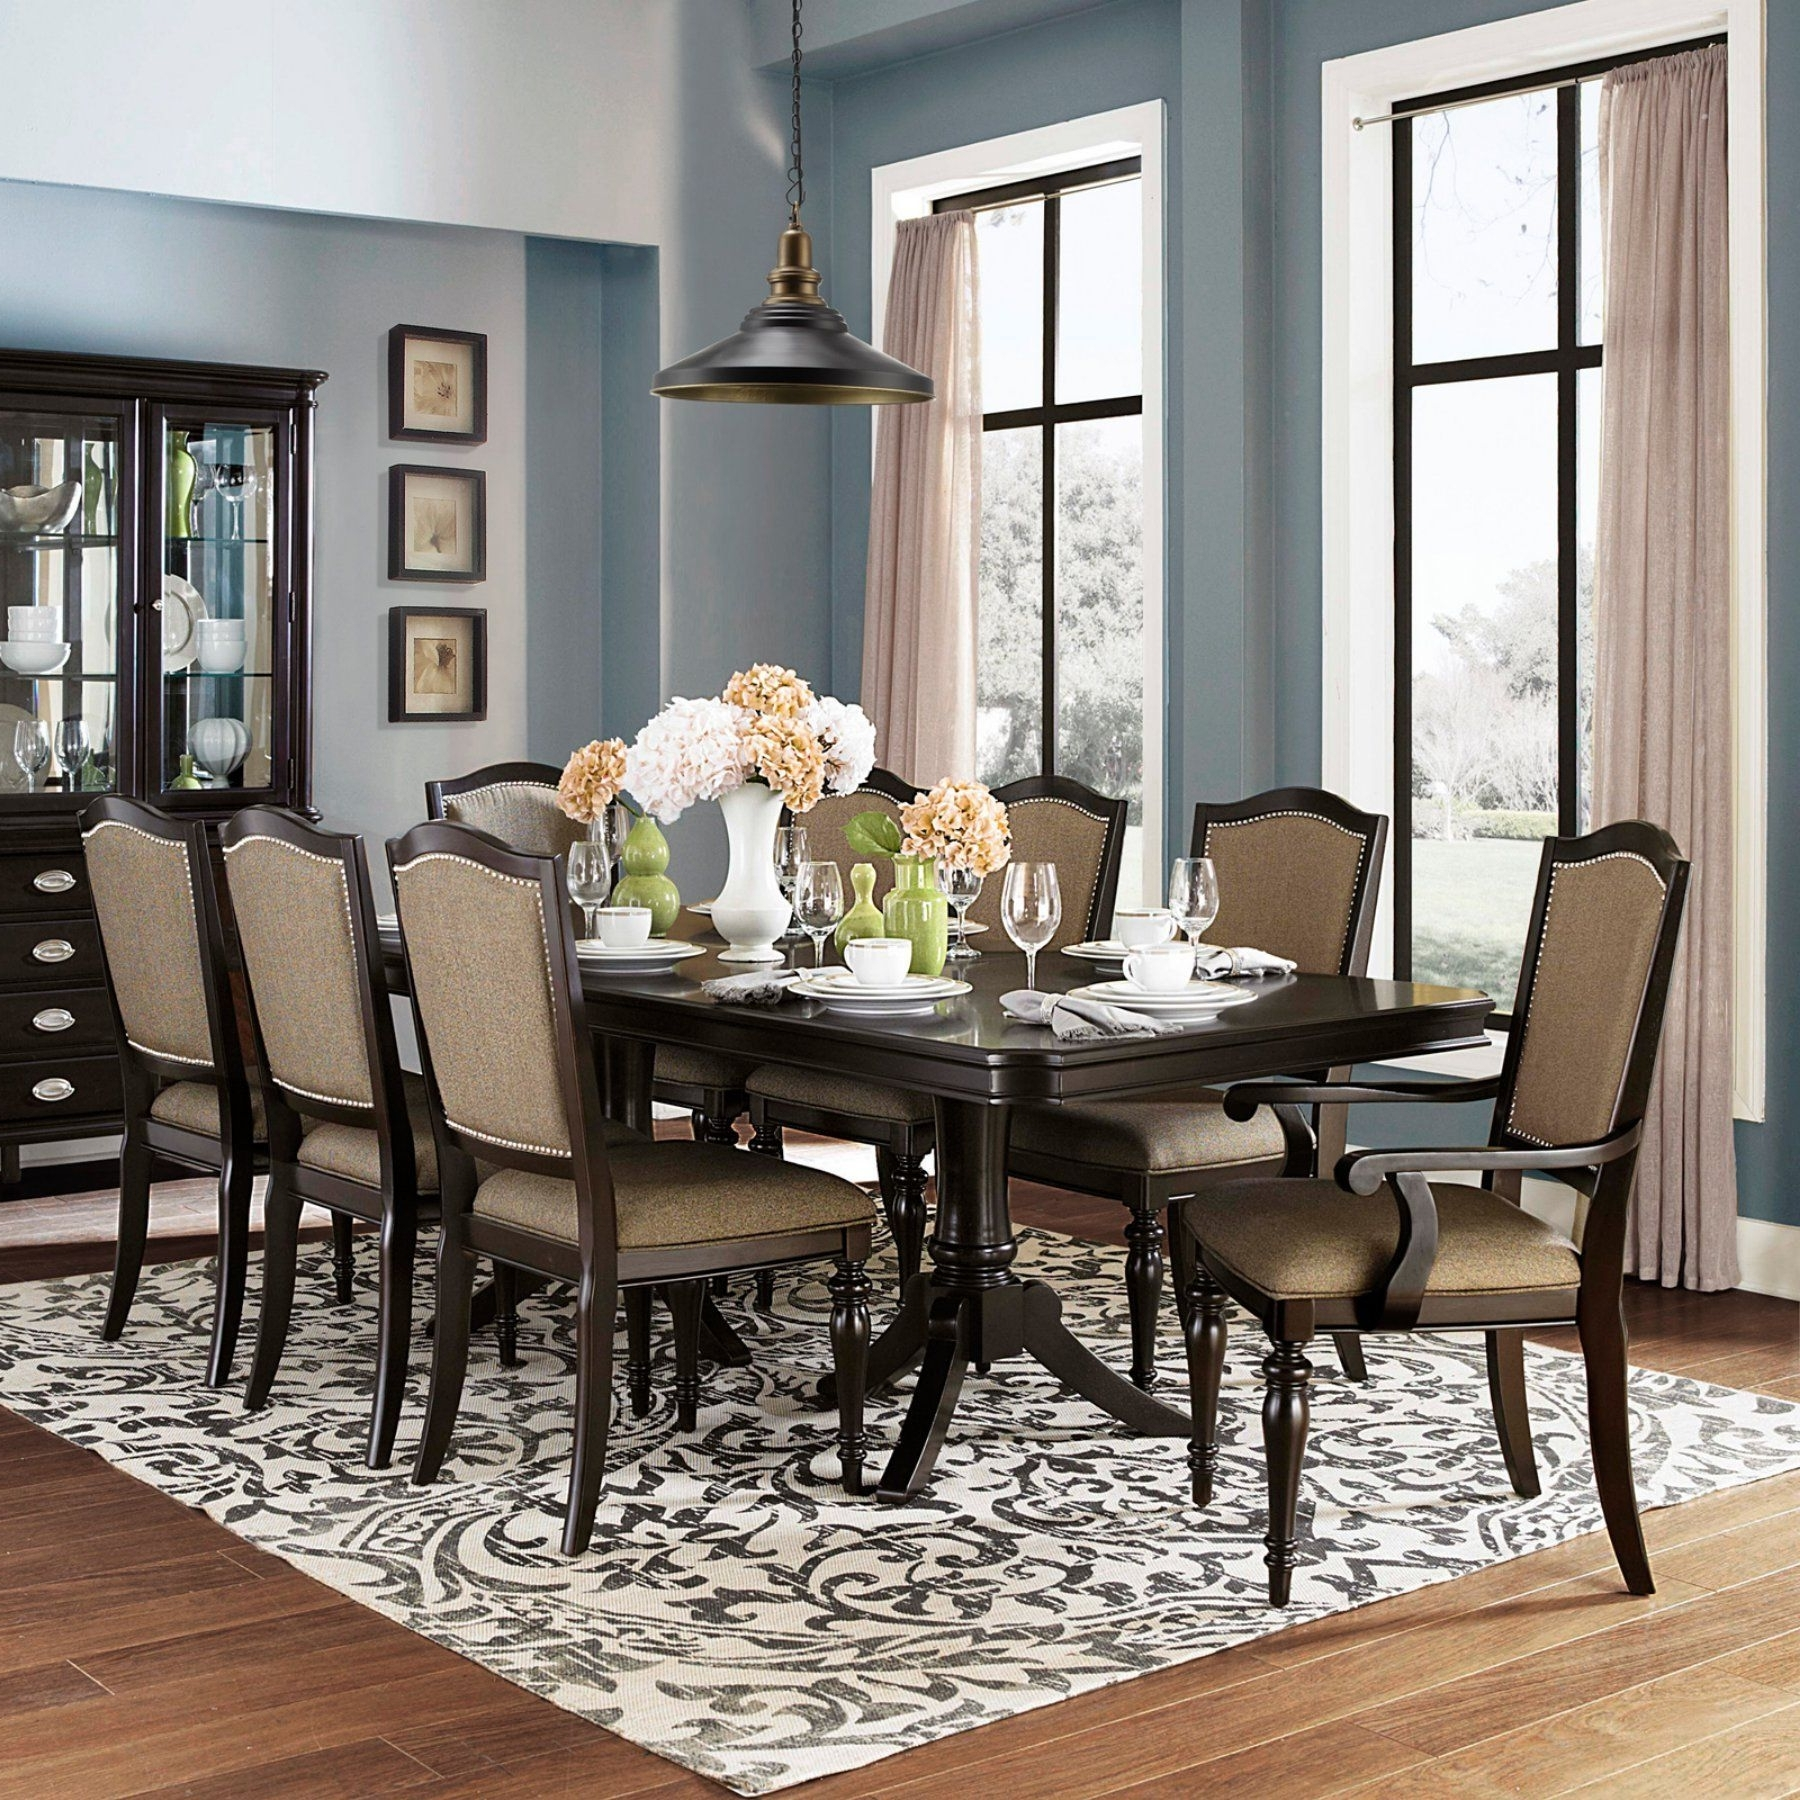 [%Homelegance Marston 9 Piece Extendable Dining Set – 2615Dc 96[9Pc With 2017 Craftsman 9 Piece Extension Dining Sets With Uph Side Chairs|Craftsman 9 Piece Extension Dining Sets With Uph Side Chairs Intended For Latest Homelegance Marston 9 Piece Extendable Dining Set – 2615Dc 96[9Pc|2017 Craftsman 9 Piece Extension Dining Sets With Uph Side Chairs Intended For Homelegance Marston 9 Piece Extendable Dining Set – 2615Dc 96[9Pc|Well Known Homelegance Marston 9 Piece Extendable Dining Set – 2615Dc 96[9Pc In Craftsman 9 Piece Extension Dining Sets With Uph Side Chairs%] (View 1 of 25)